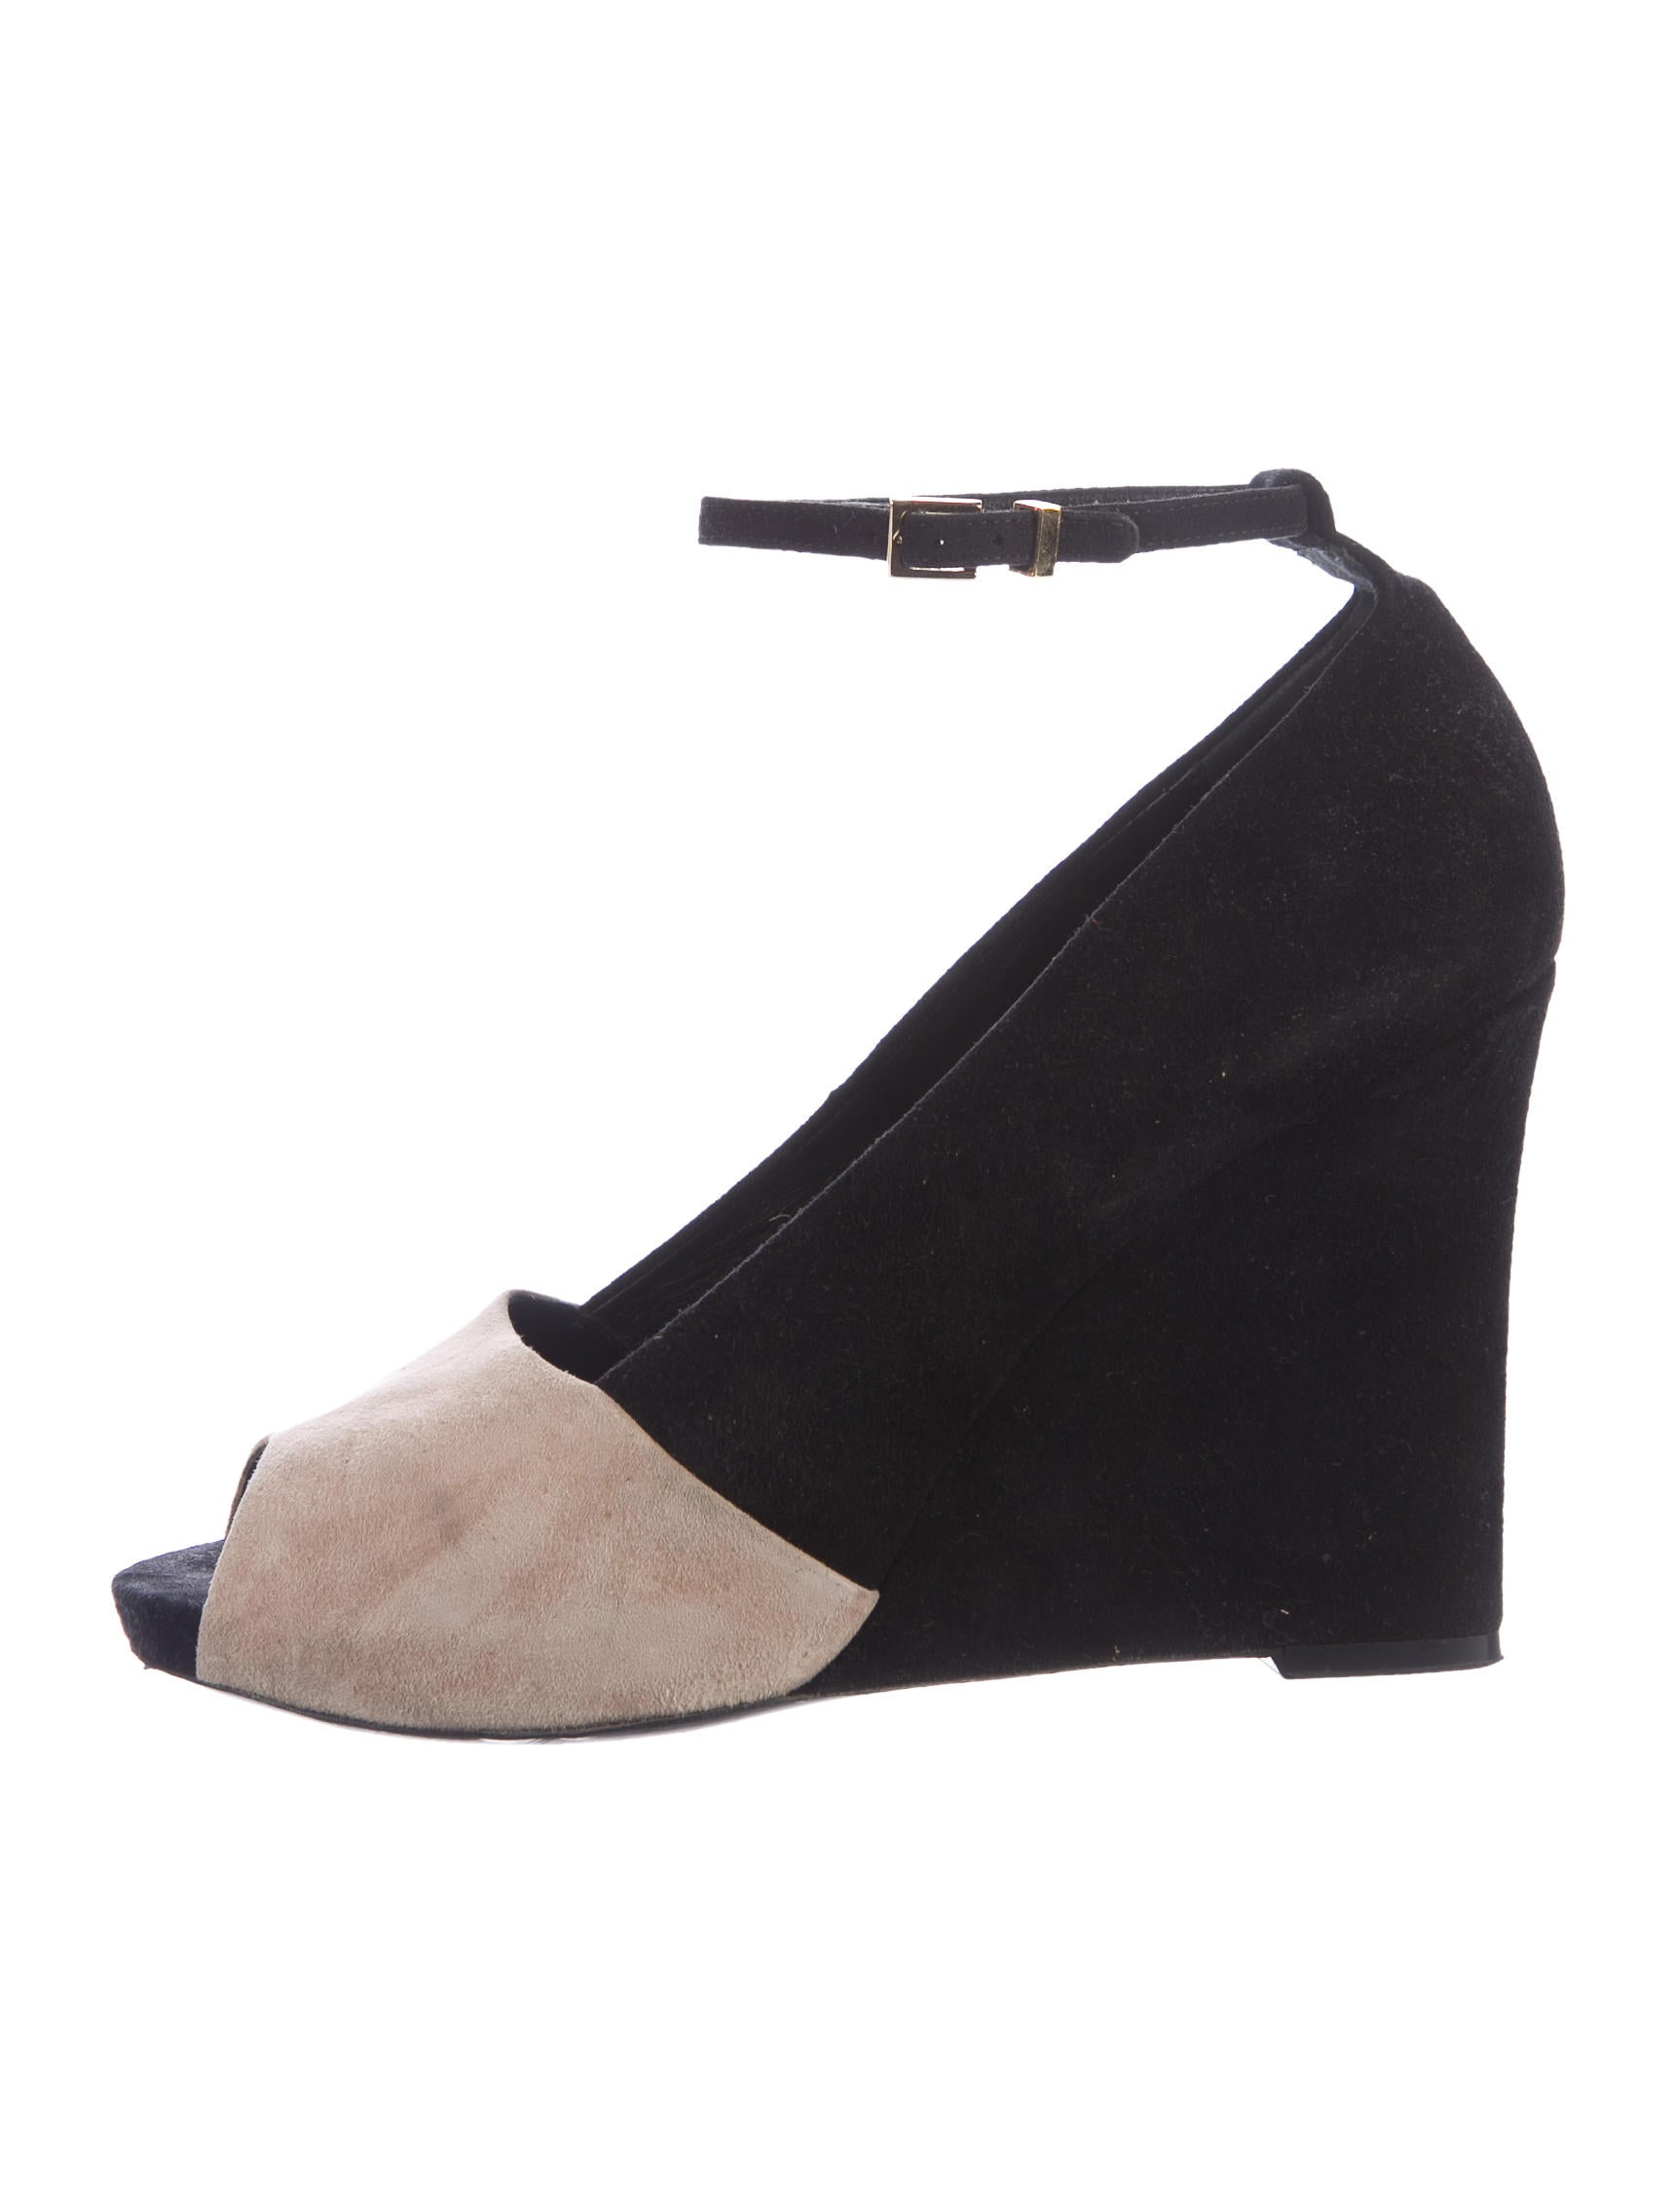 Céline Suede Peep-Toe Wedges cheap buy authentic sale very cheap clearance pre order enjoy cheap online Er9g0hNP0I